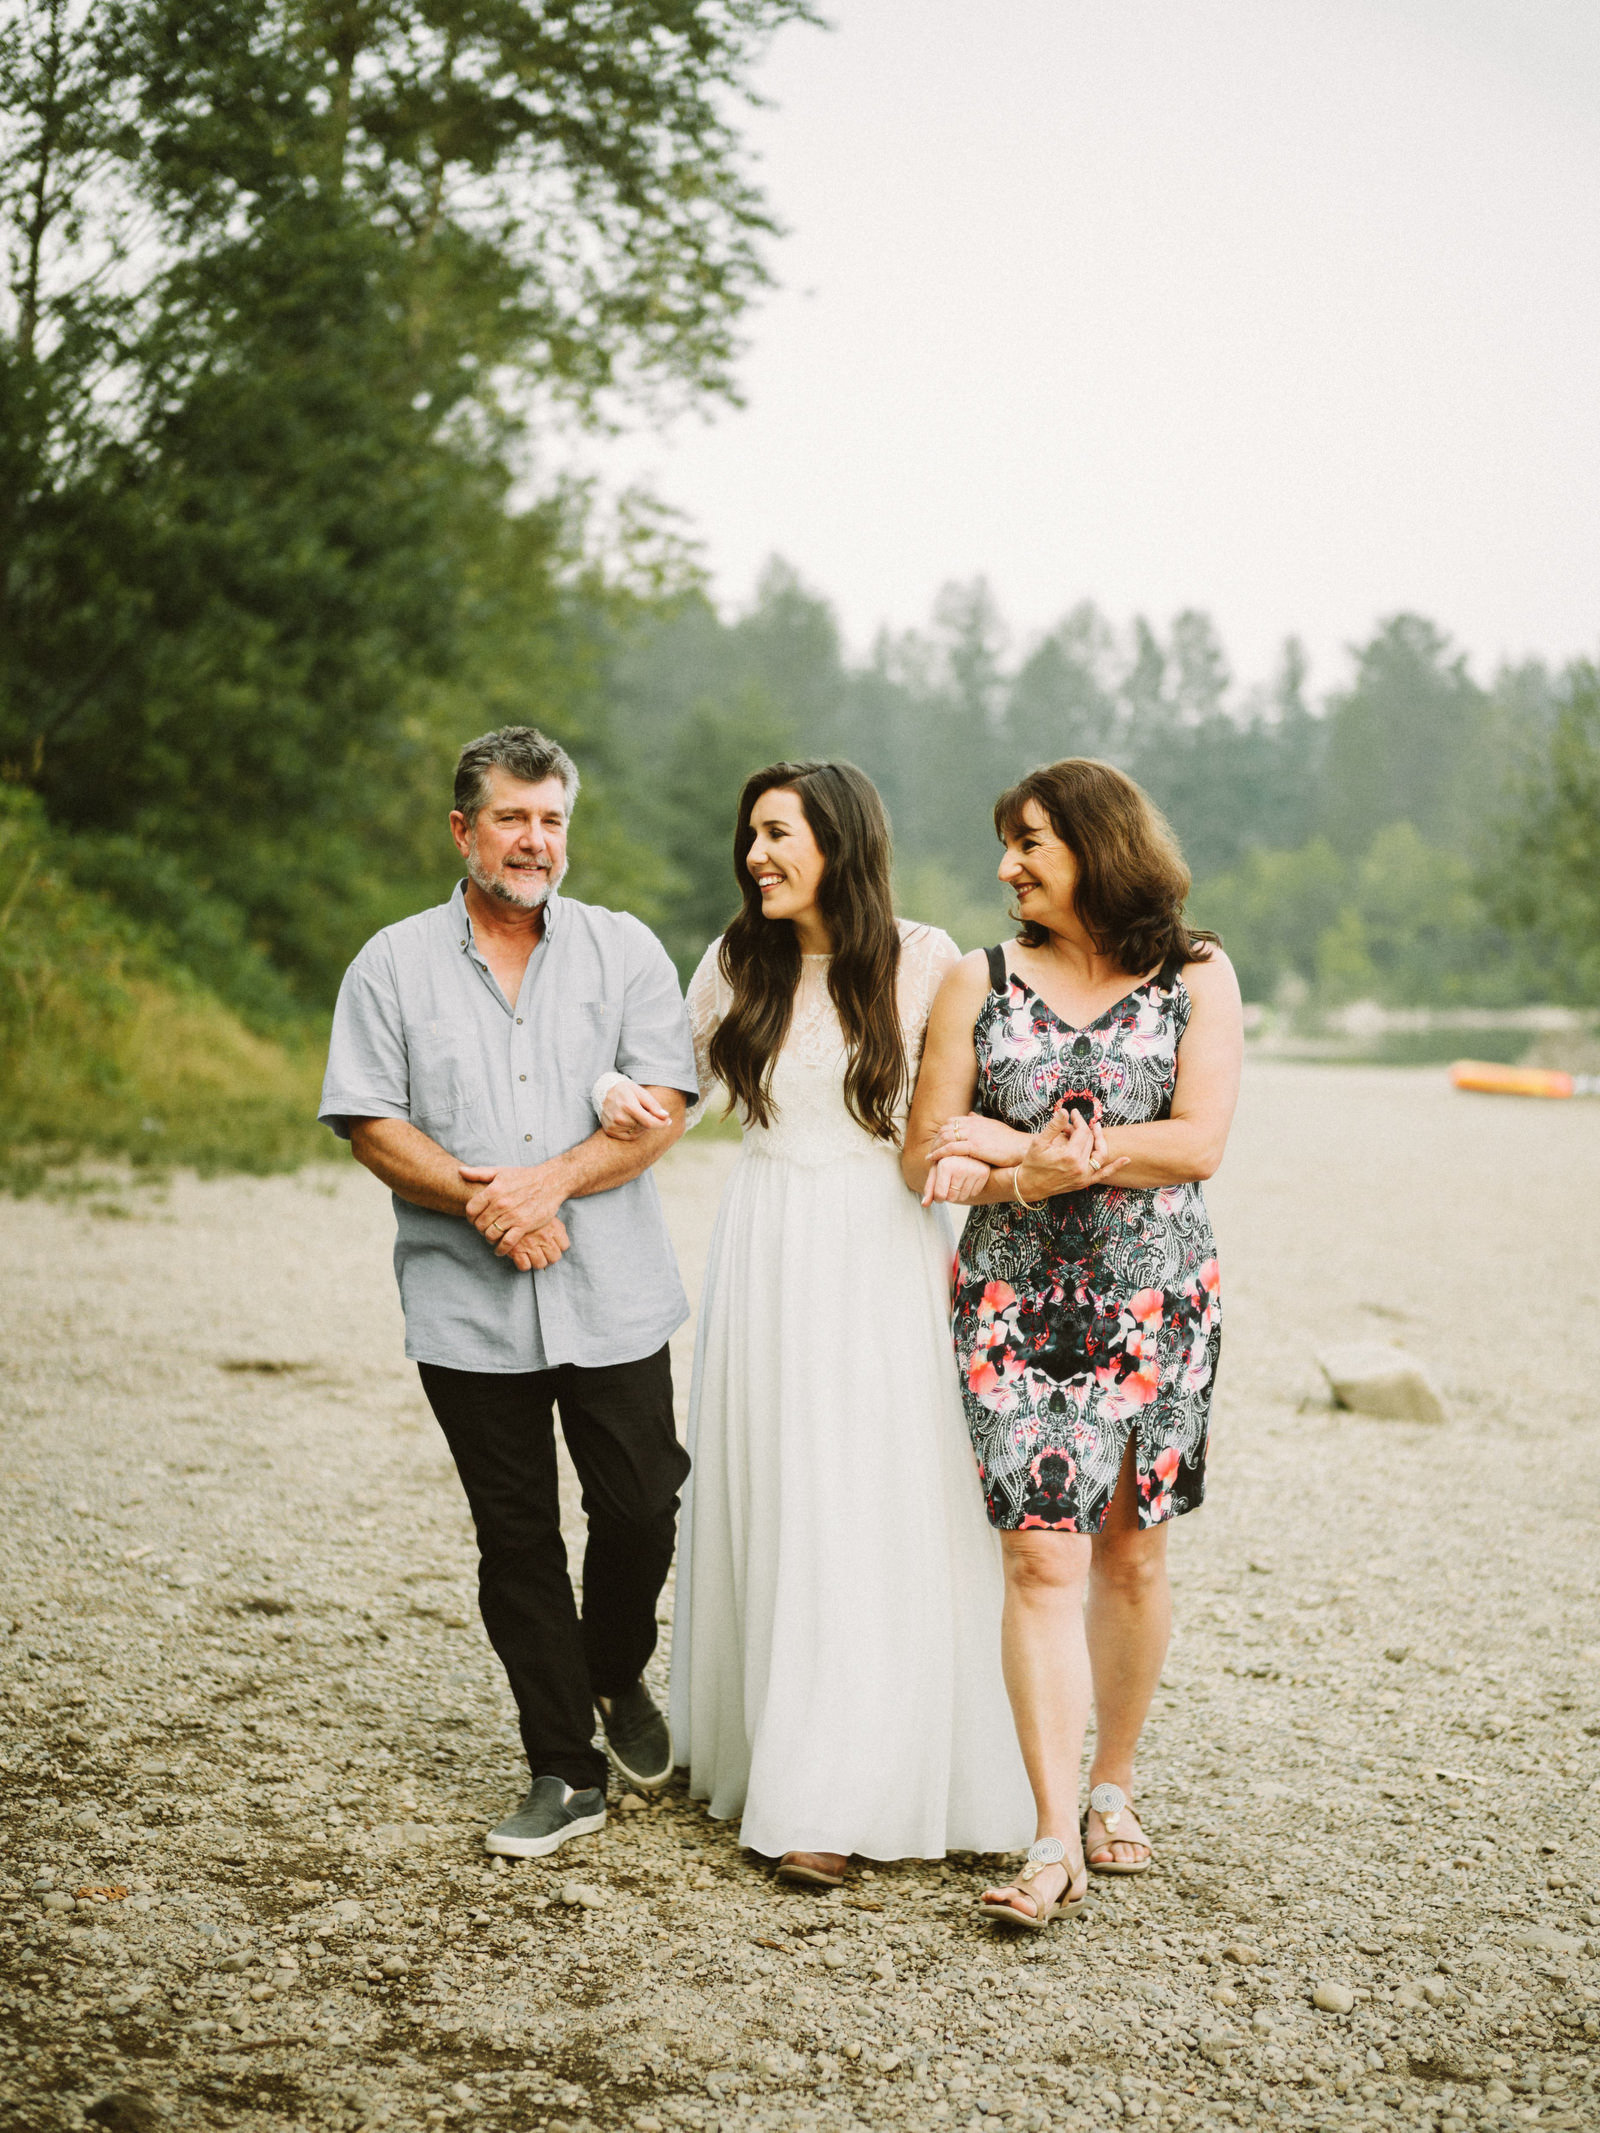 athena-and-camron-seattle-elopement-wedding-benj-haisch-rattlesnake-lake-christian-couple-goals38